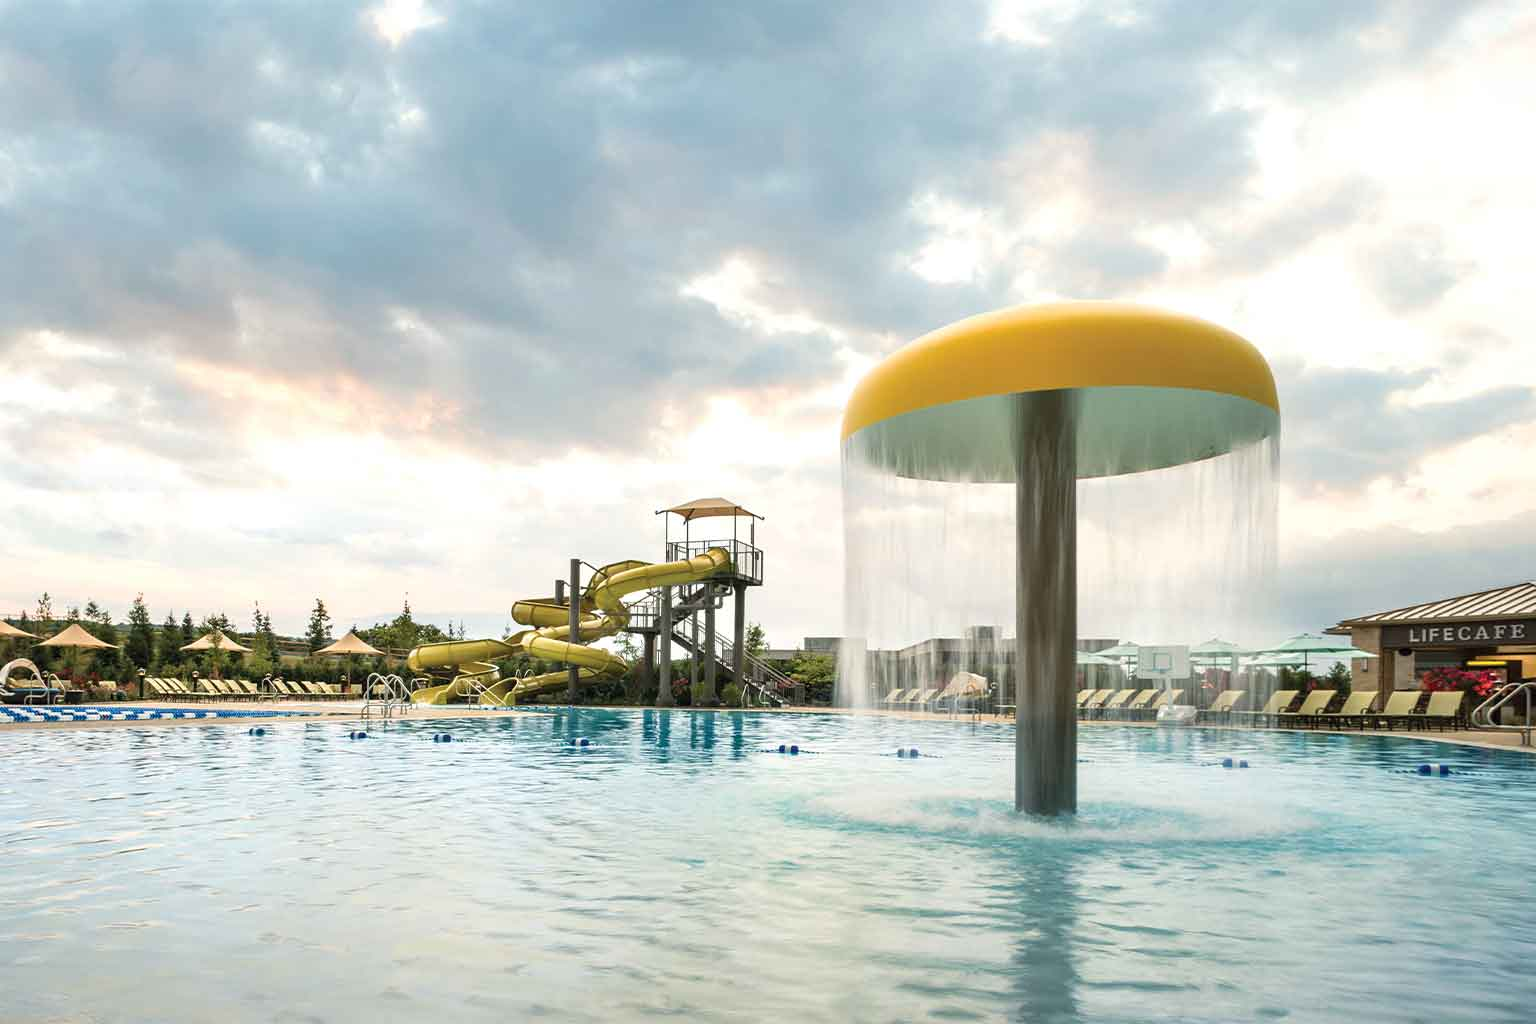 A yellow water feature and waterslides at a Life Time outdoor pool.